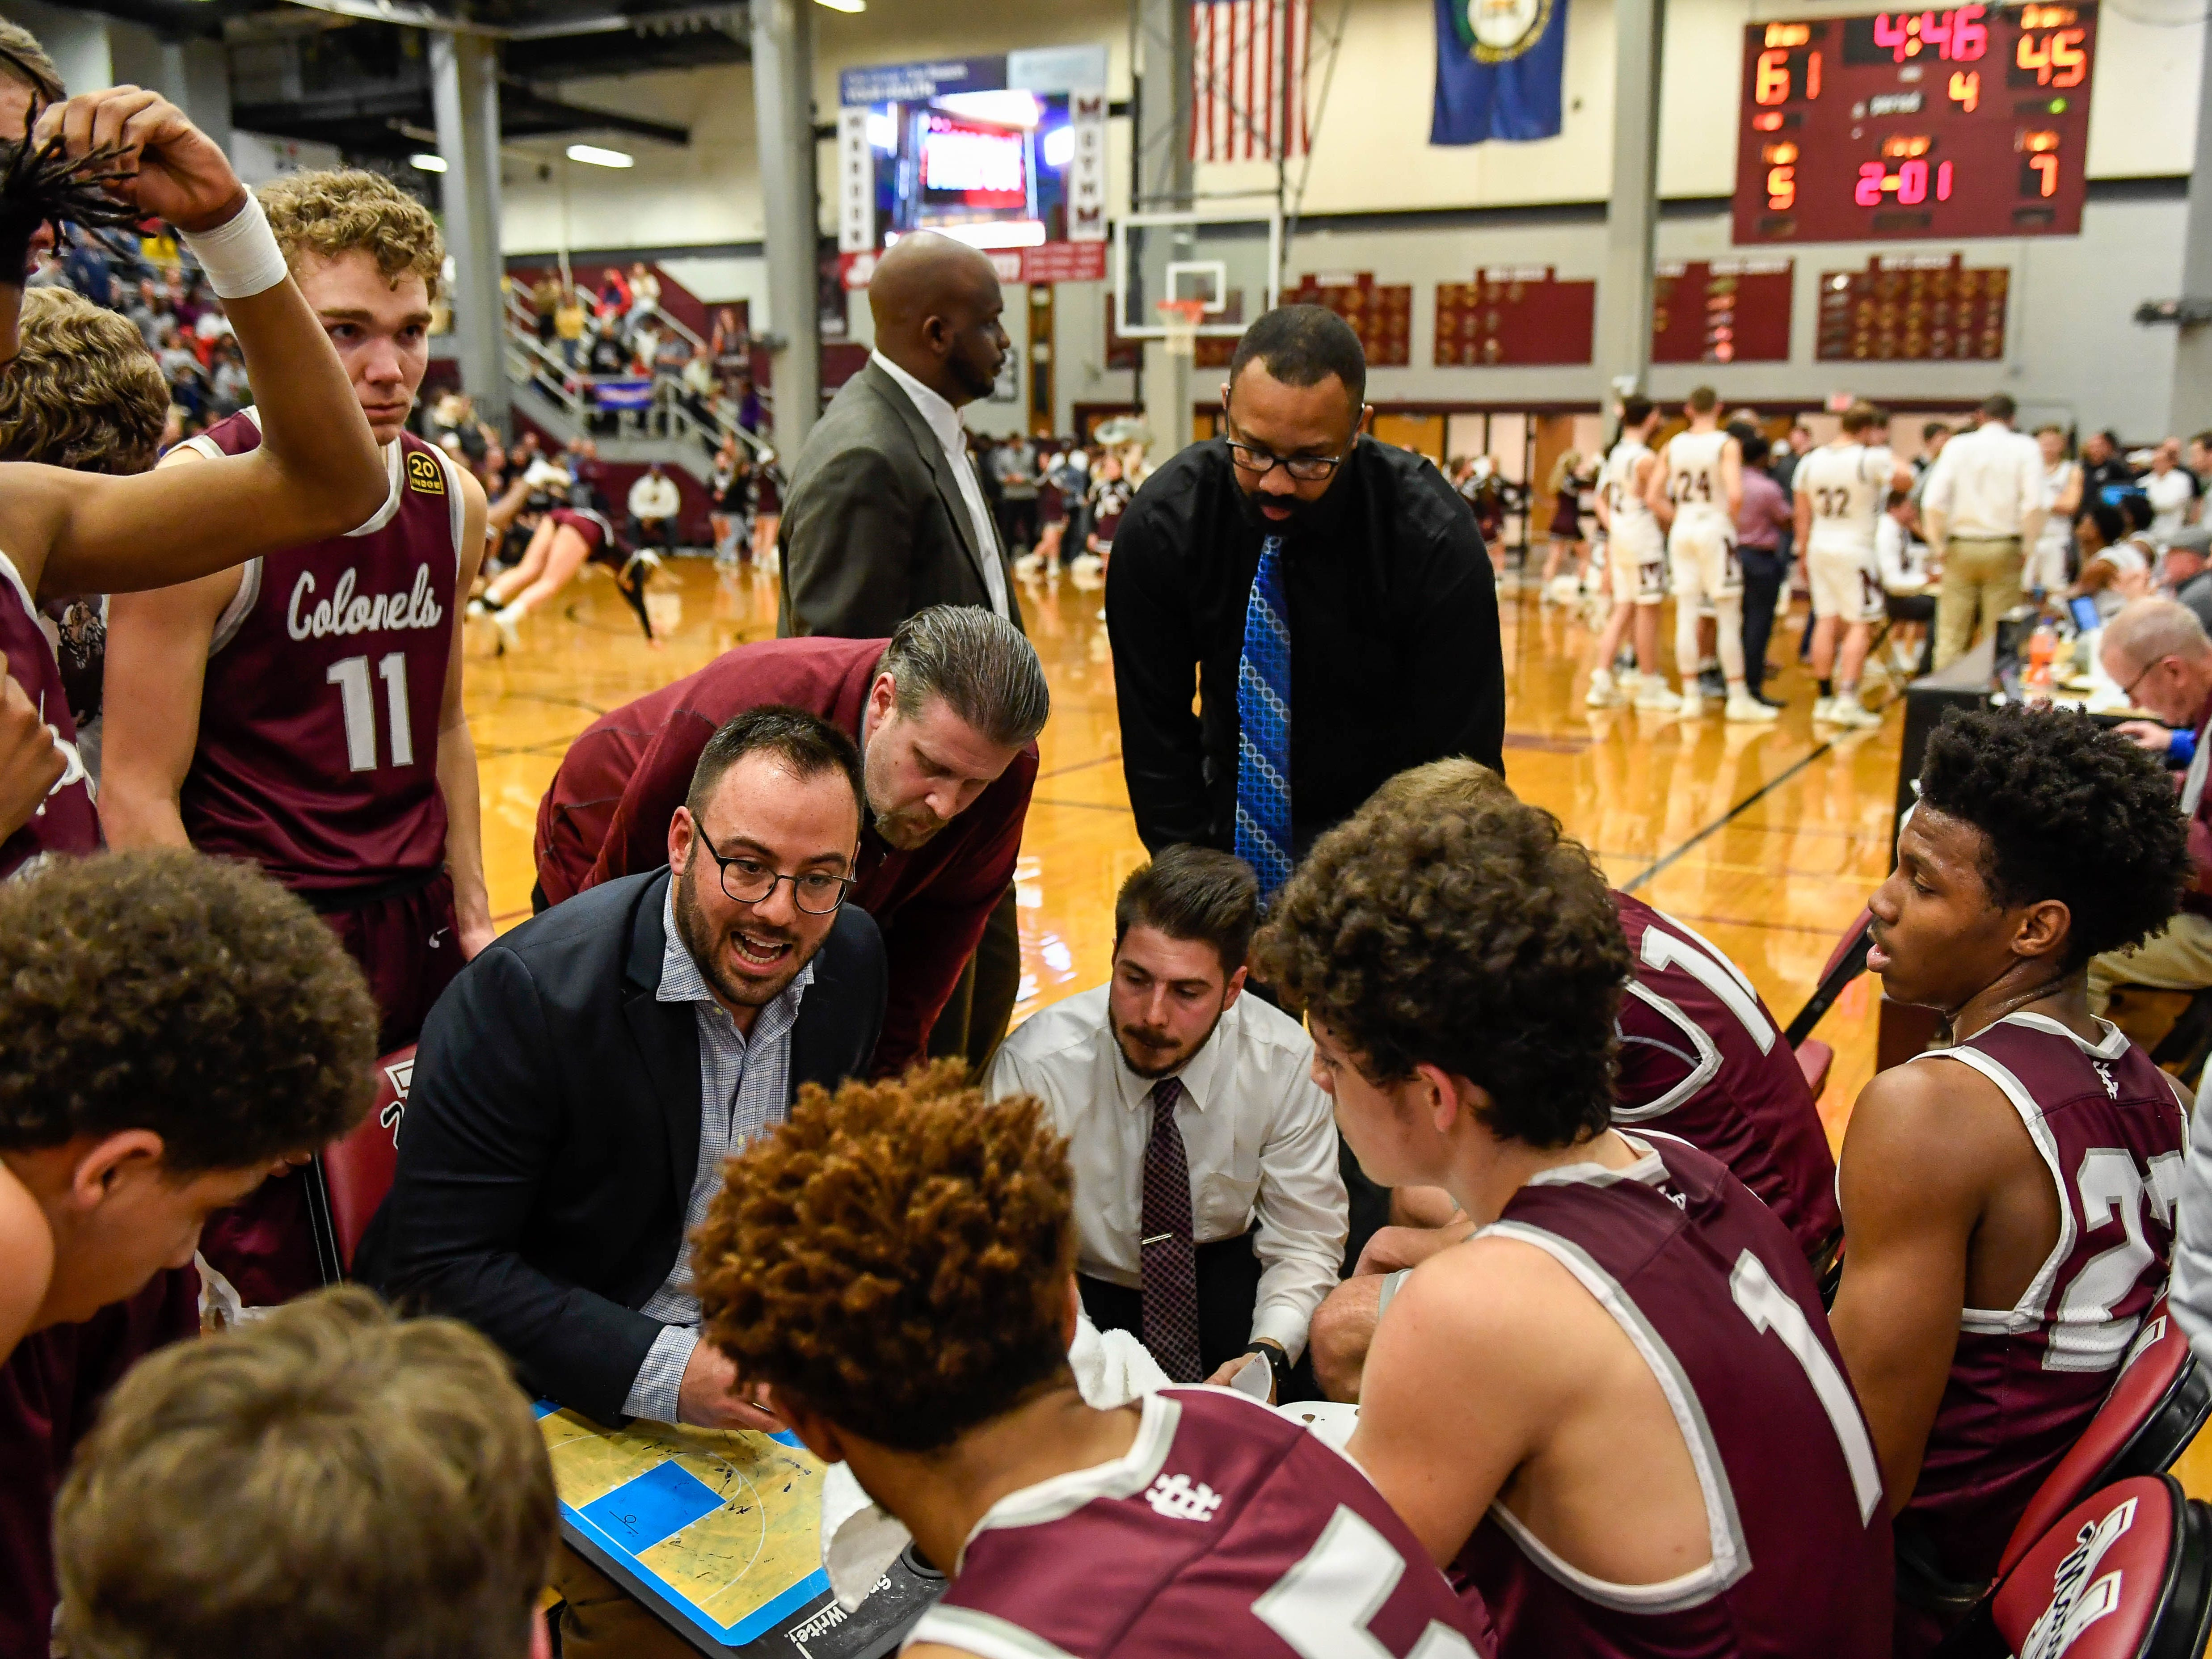 Sixteen points down with 4:46 on clock Henderson Head Coach Tyler Smithart talks to this team during a time-out as the Henderson County Colonels play the Madisonville Maroons in the Boys 2nd Region basketball semi-finals Friday in Hansen, March 1, 2019.